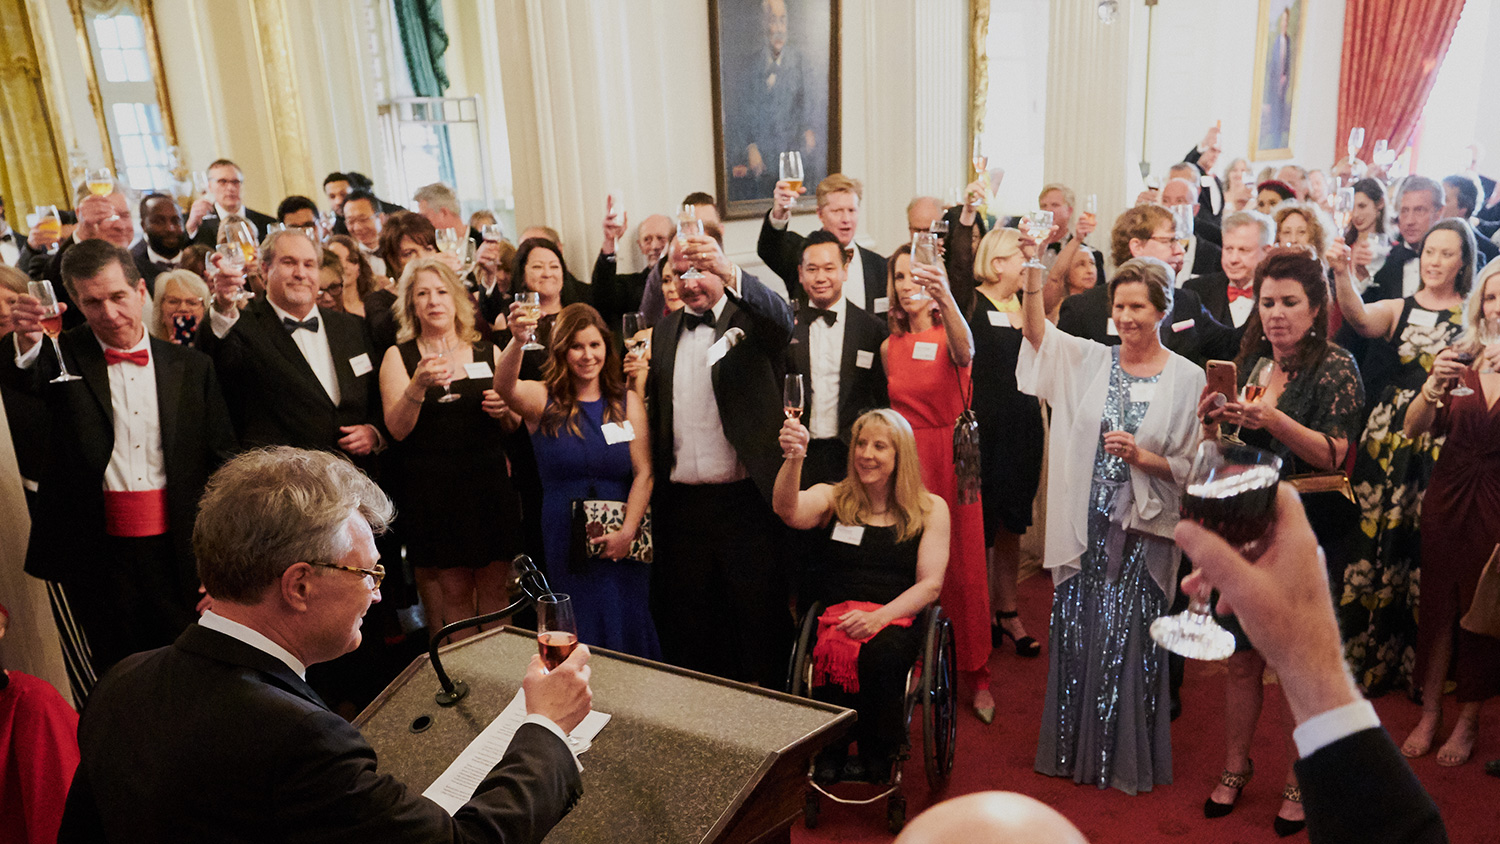 Dean Hoversten delivers toast at Gala